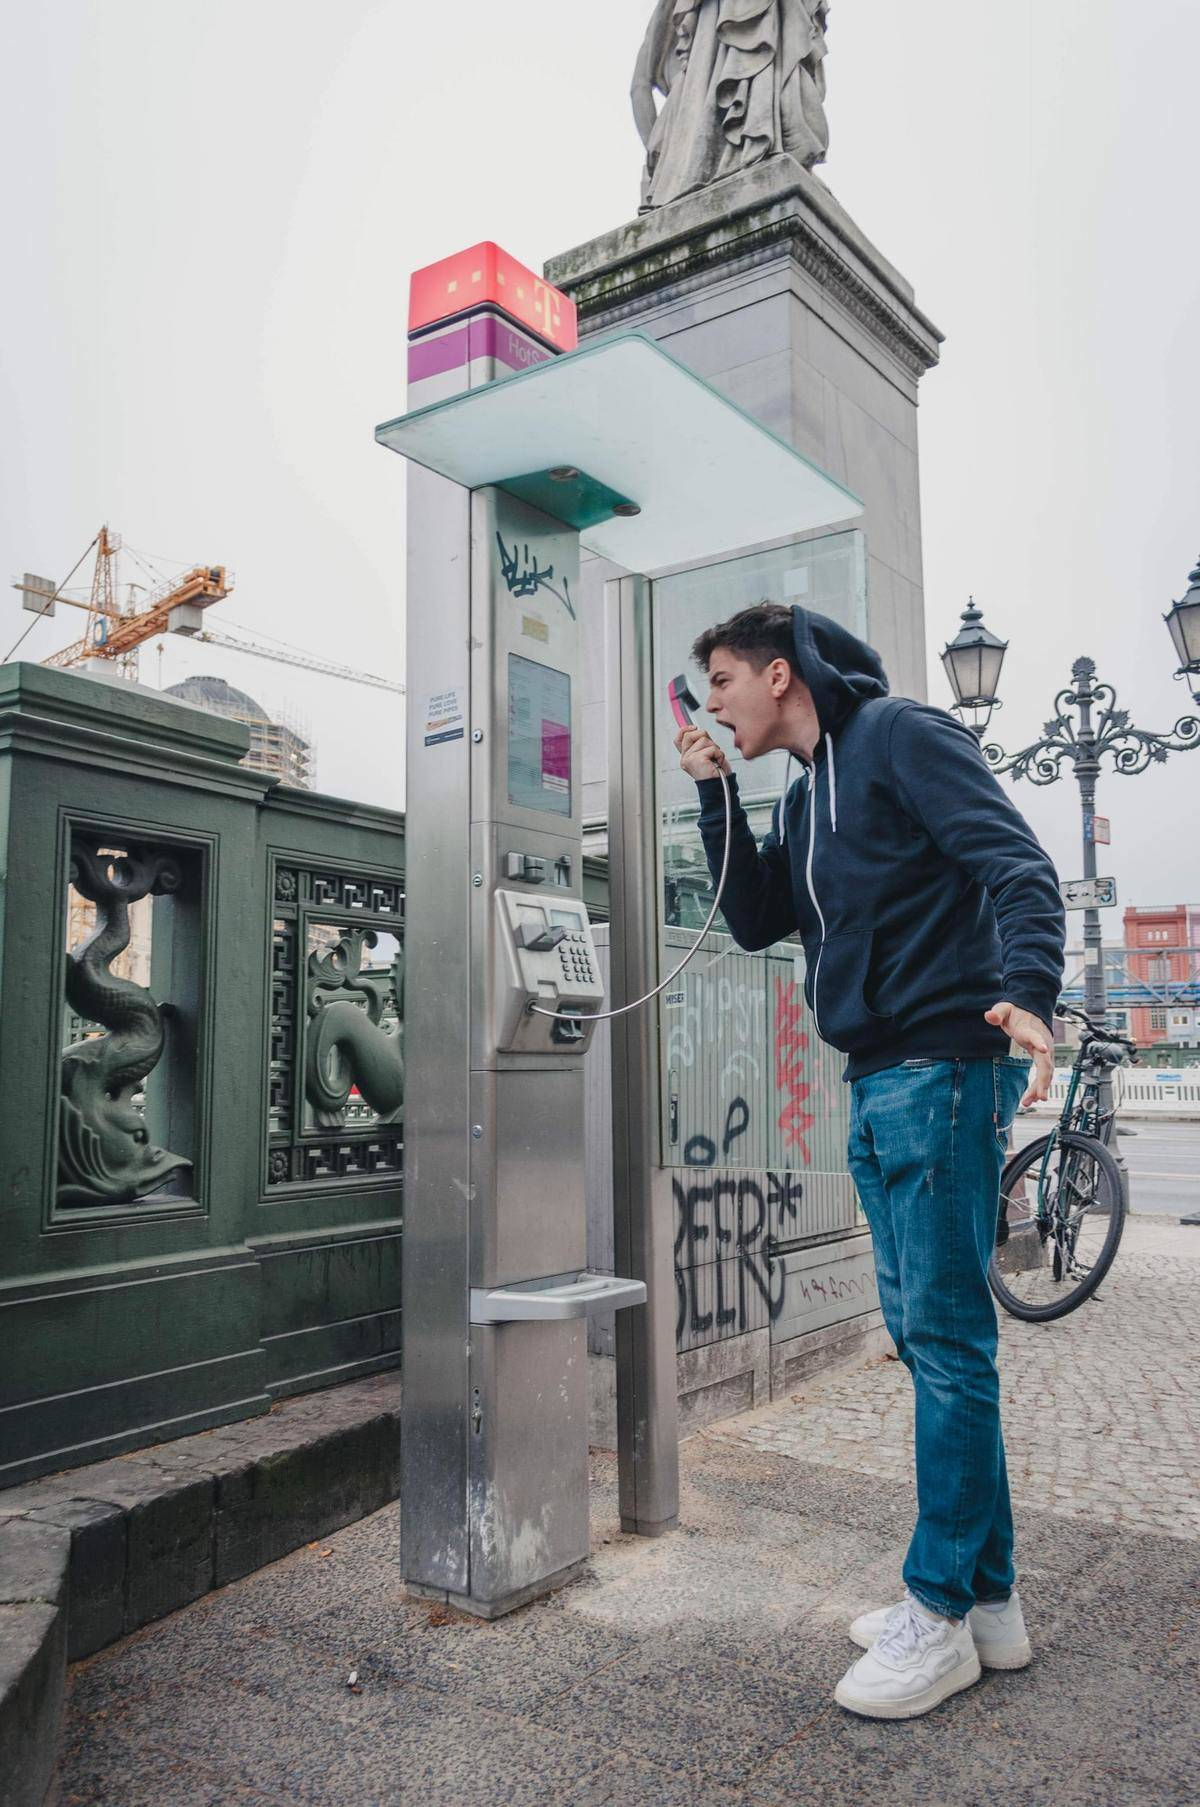 A man angrily shouts at a pay phone.